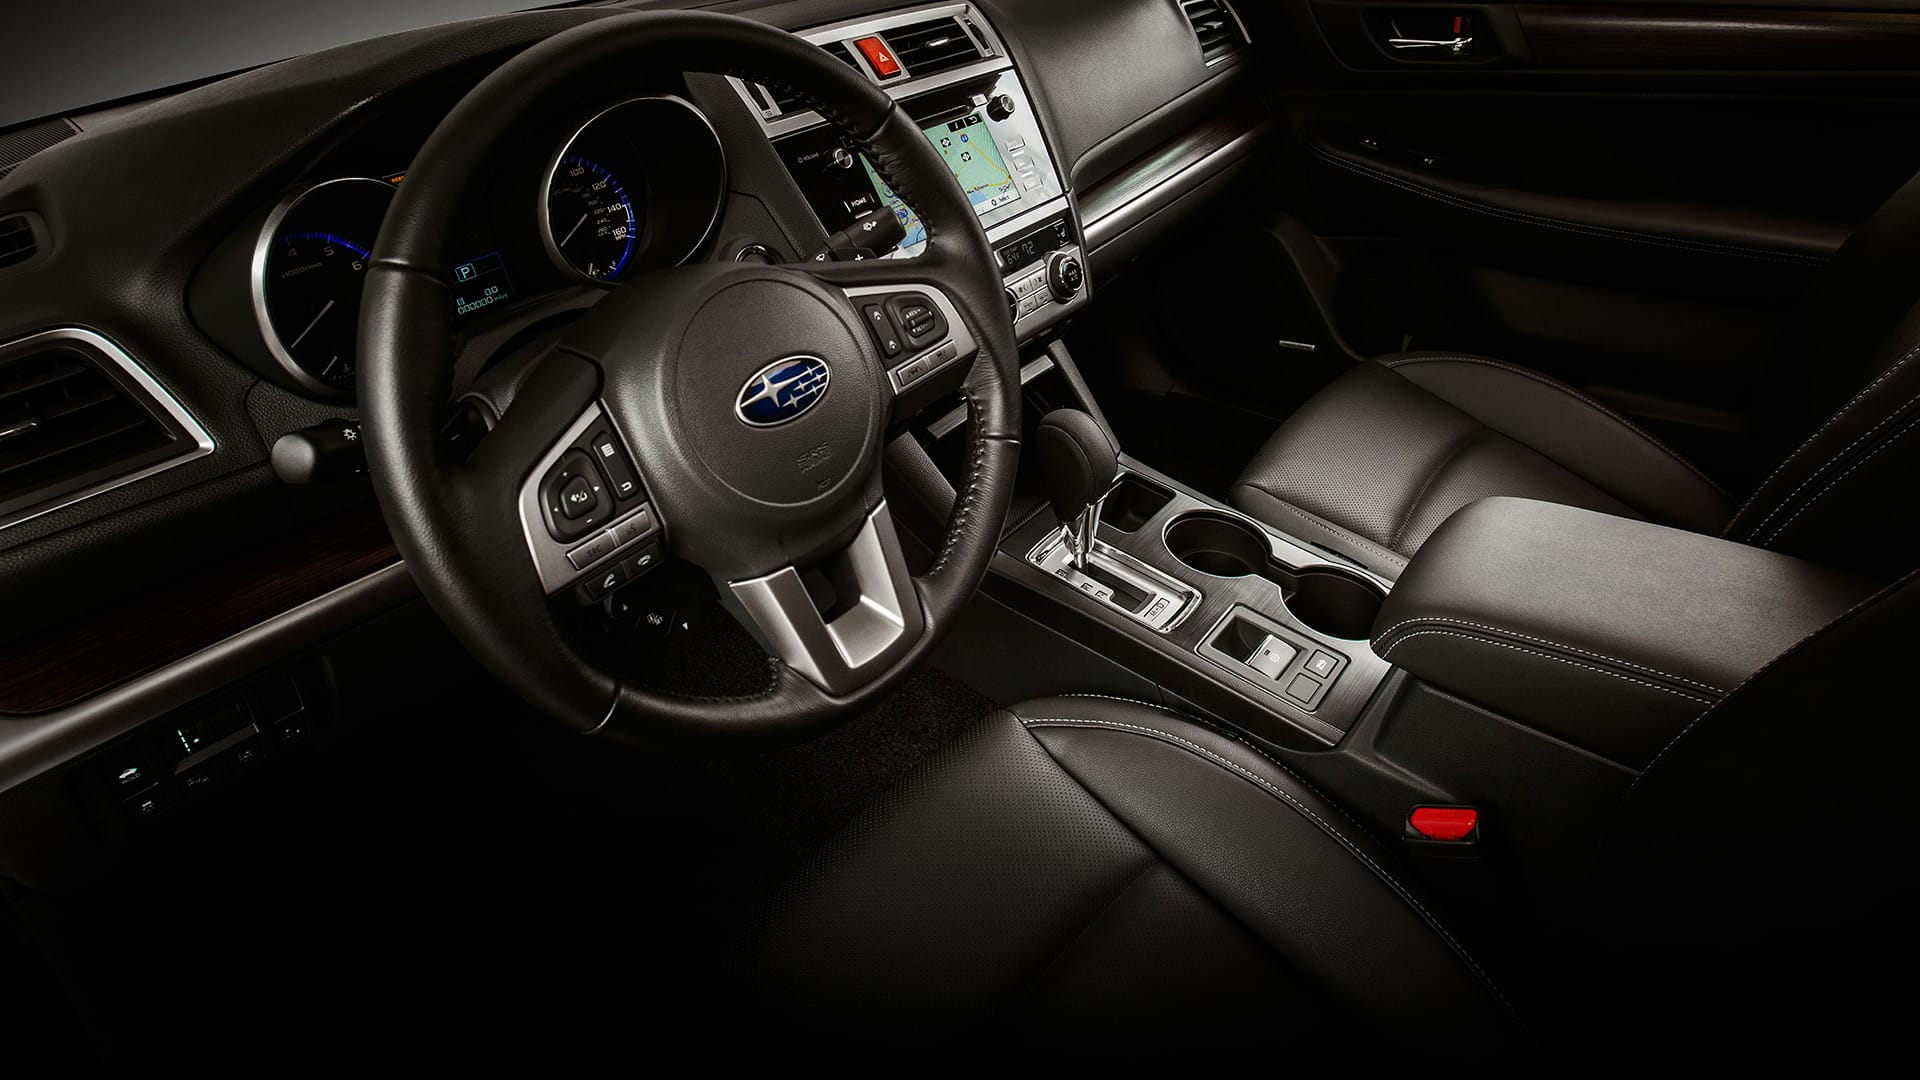 Settle into plush comfort with perforated, leather-trimmed front and rear seats.